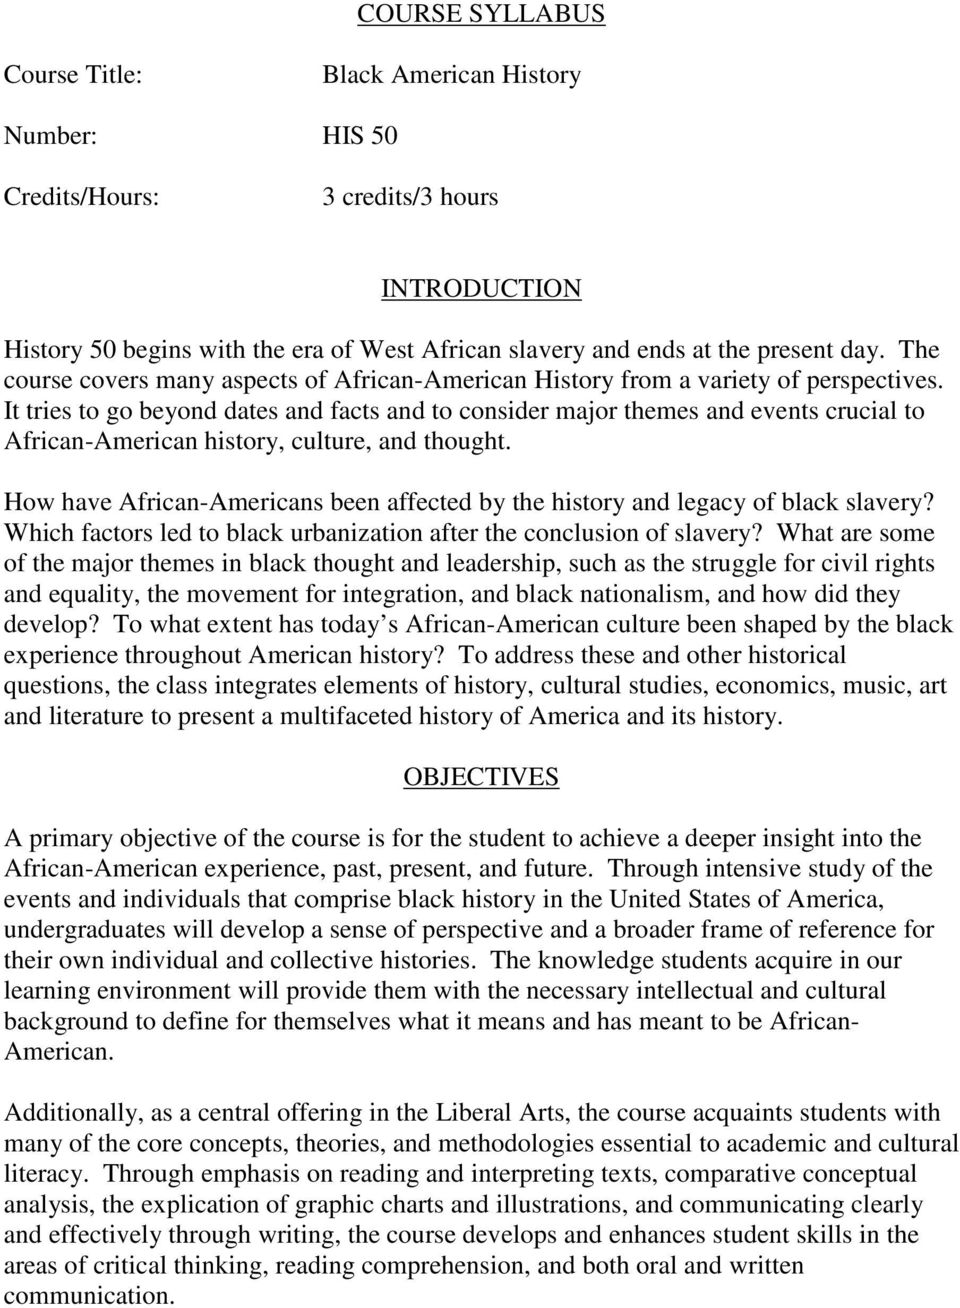 the many adversities that affected the african americans essay Describes the tough daily conditions that african americans had to endure  history advanced black history month essay  fallen prey to their adversities the.